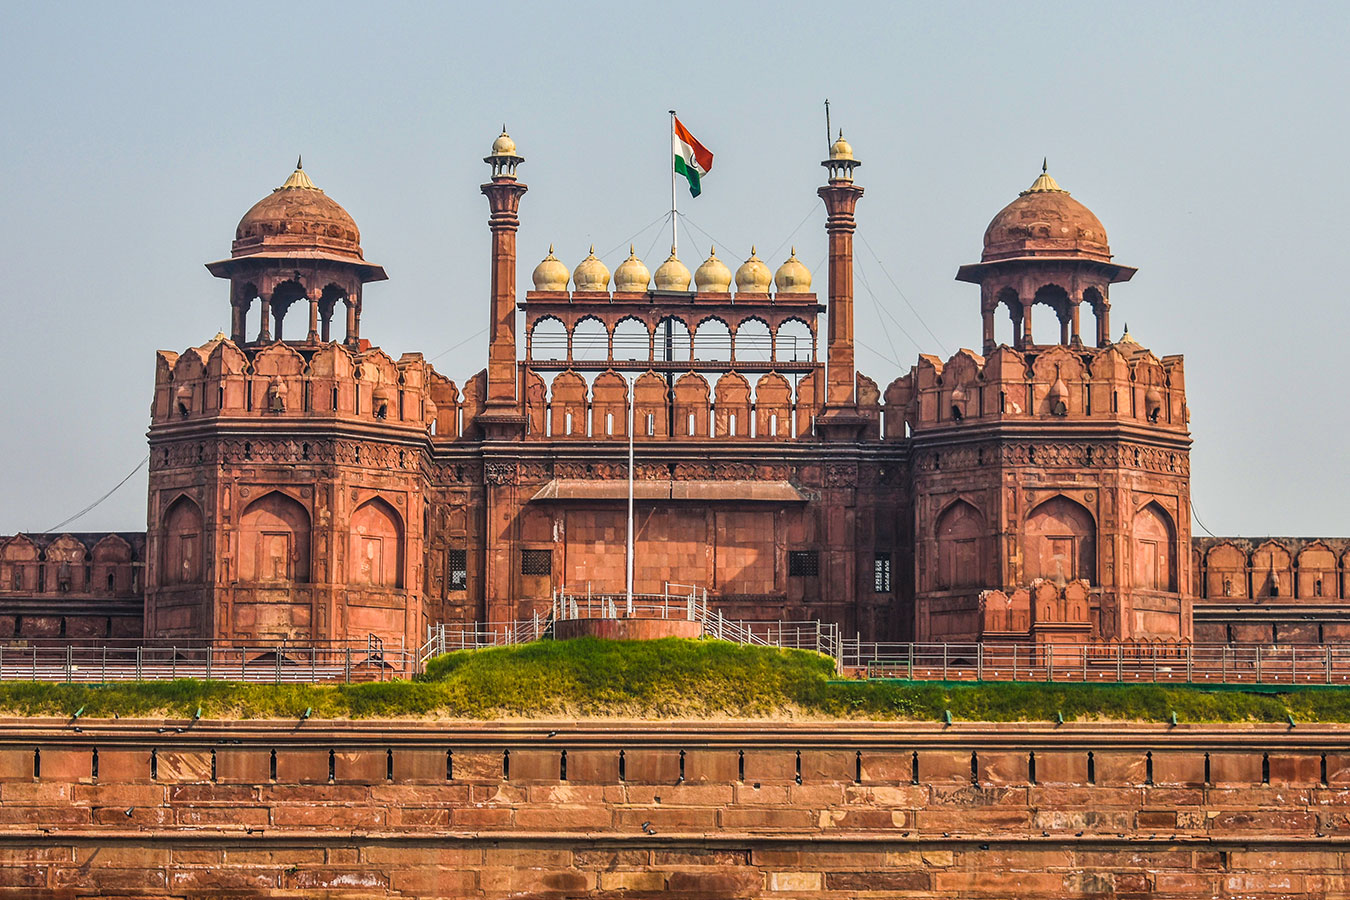 ind-independence-day-2018-delhi-red-fort.jpg